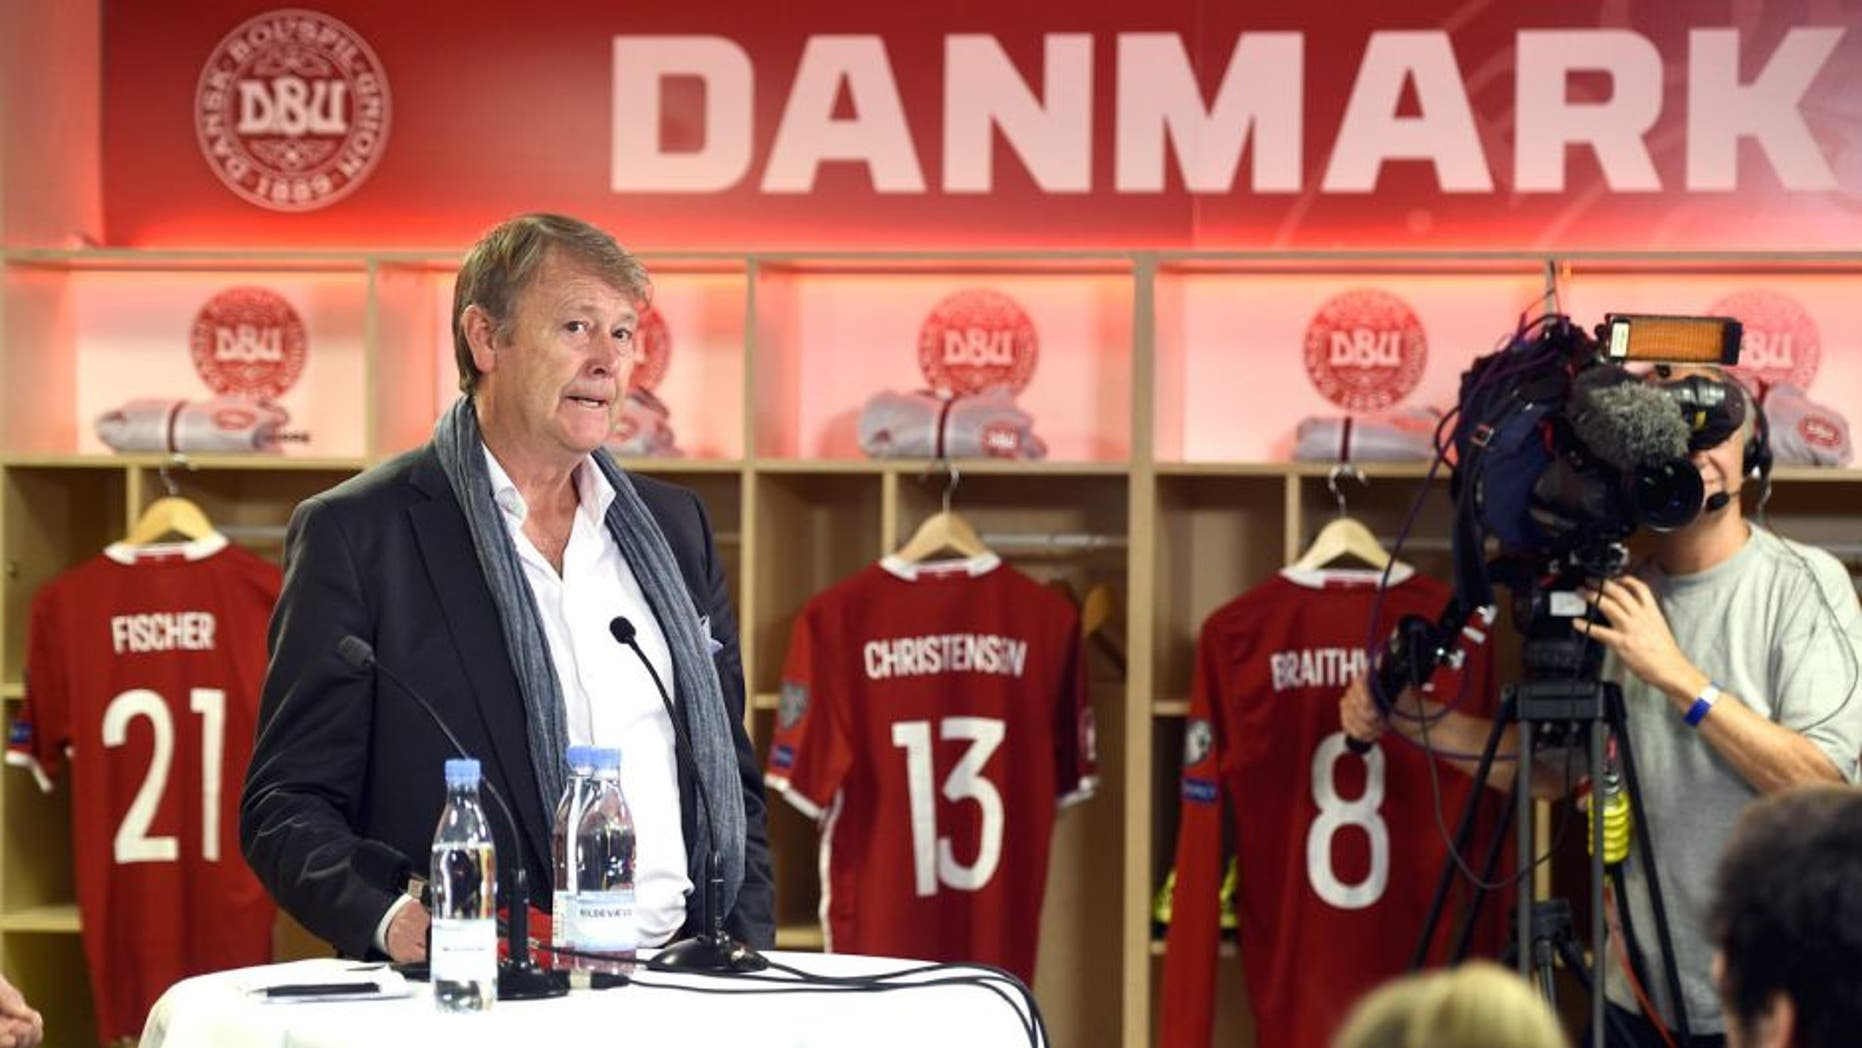 COPENHAGEN, DENMARK - DECEMBER 10: Age Hareide, New head coach of Denmark speaks to the media during the Danish FA (DBU) Press Conference at Telia Parken Stadium on December 10, 2015 in Copenhagen, Denmark. (Photo by Lars Ronbog / FrontZoneSport via Getty Images)